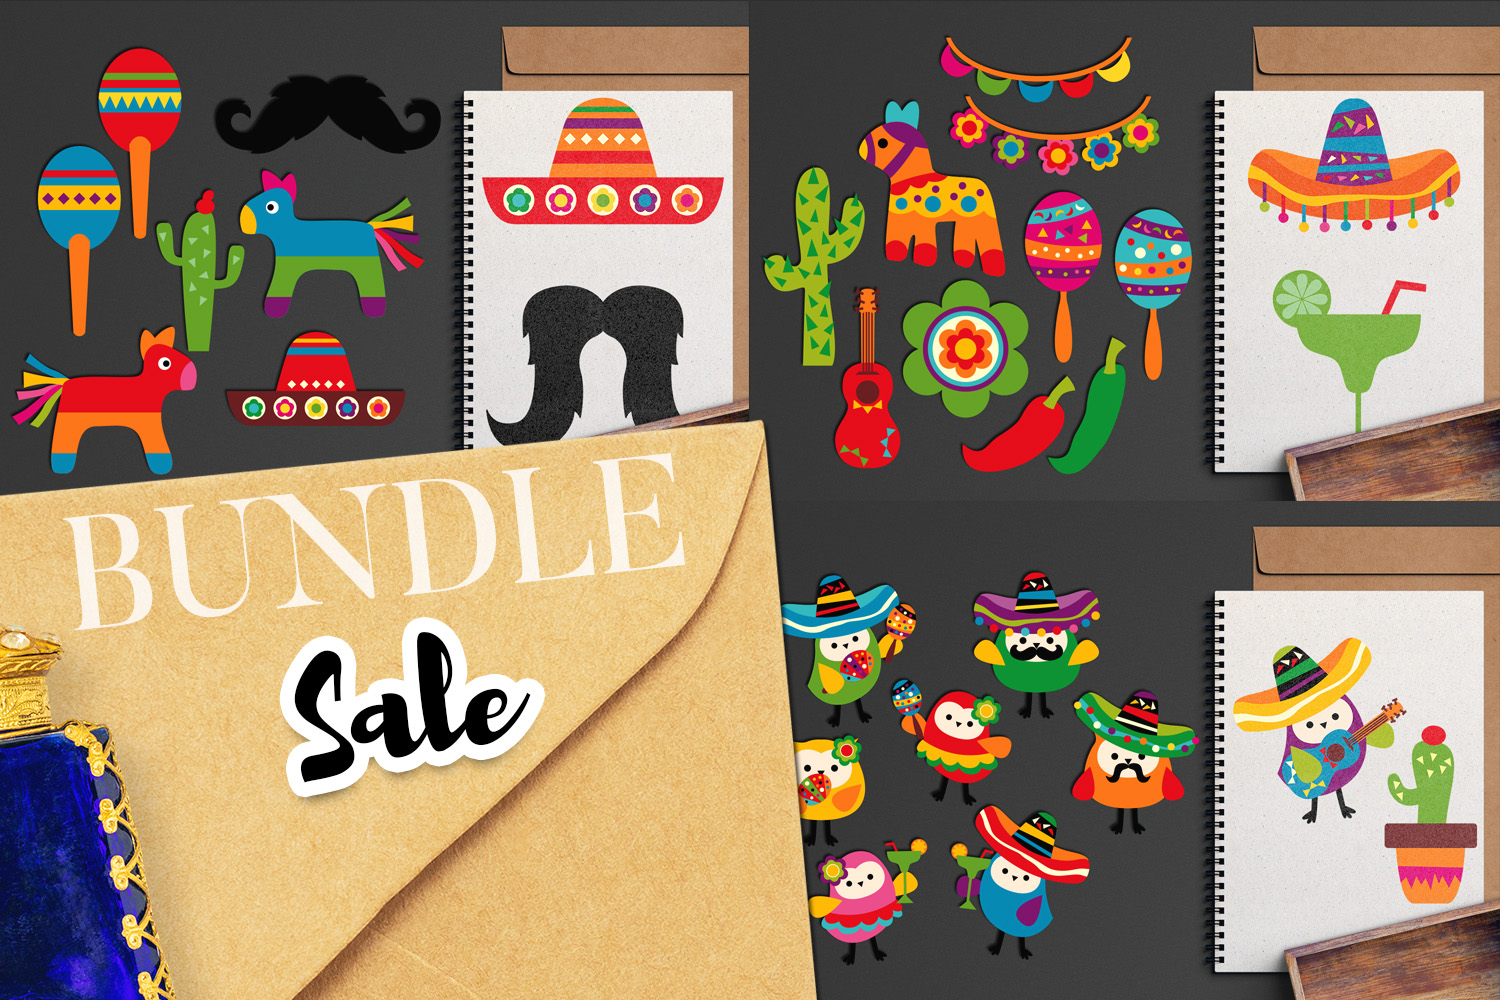 Download Free Cinco De Mayo Fiesta Bundle Graphic By Revidevi Creative Fabrica for Cricut Explore, Silhouette and other cutting machines.